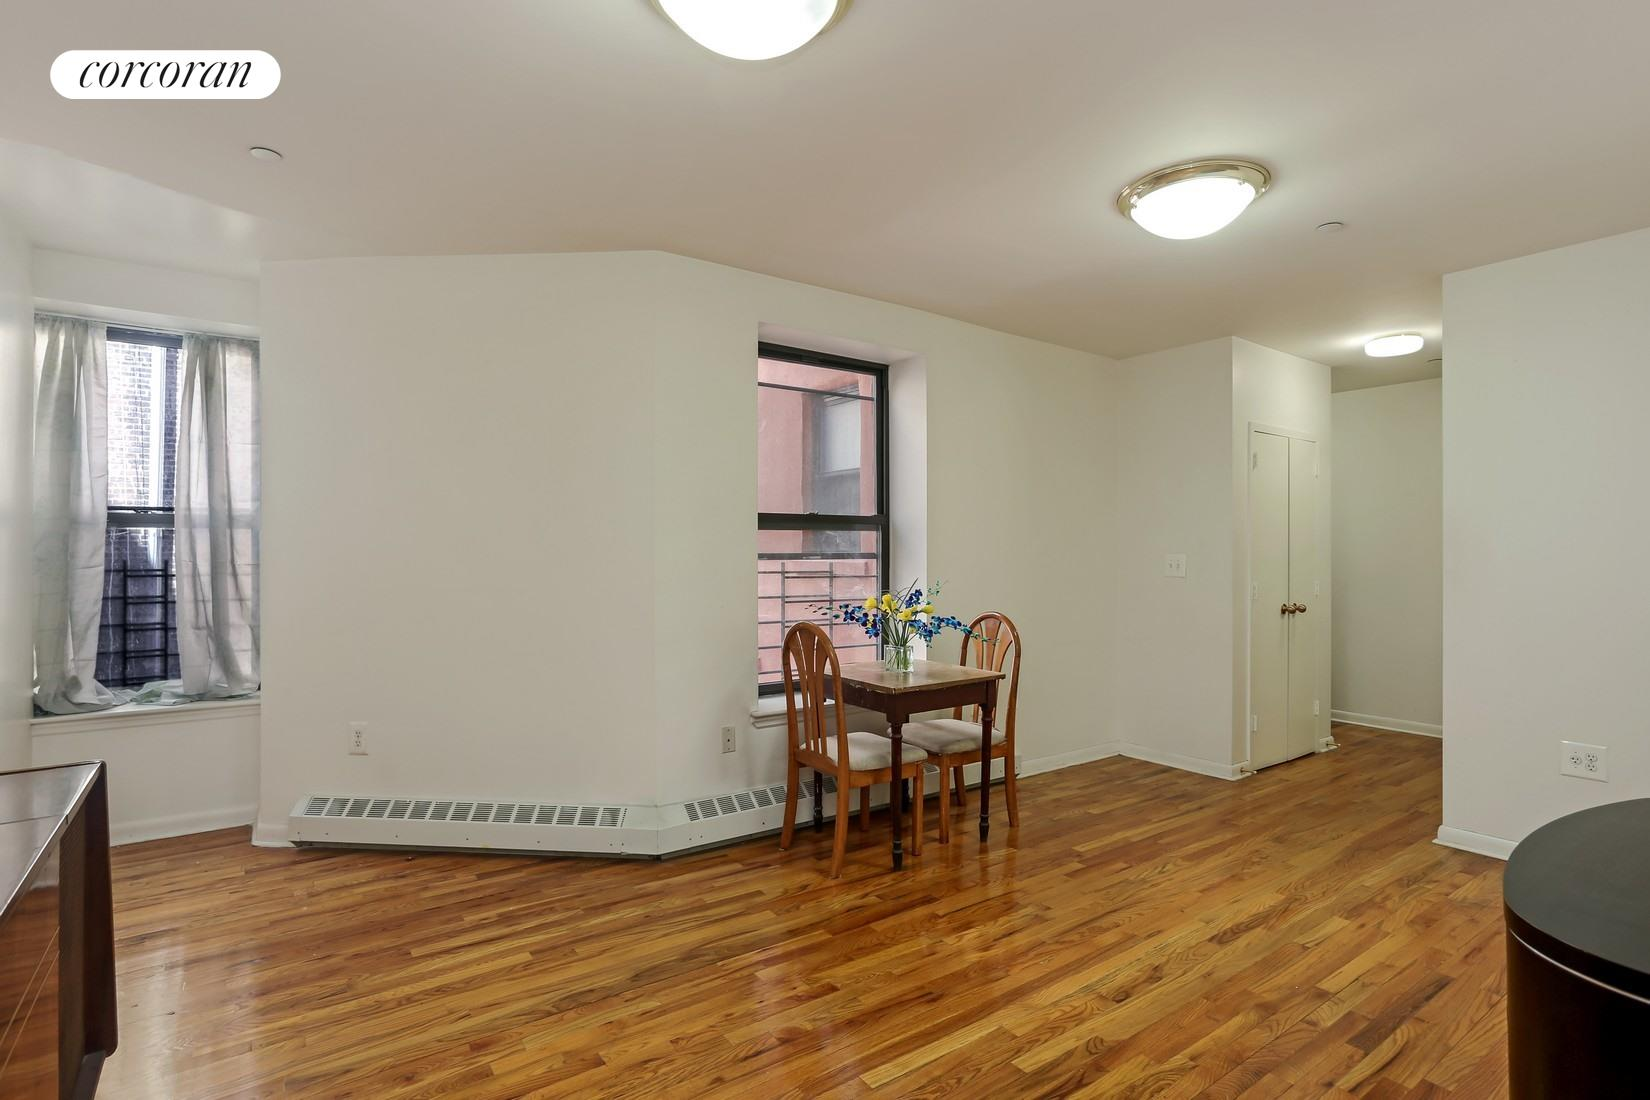 565 West 125th Street, 3A, No image available